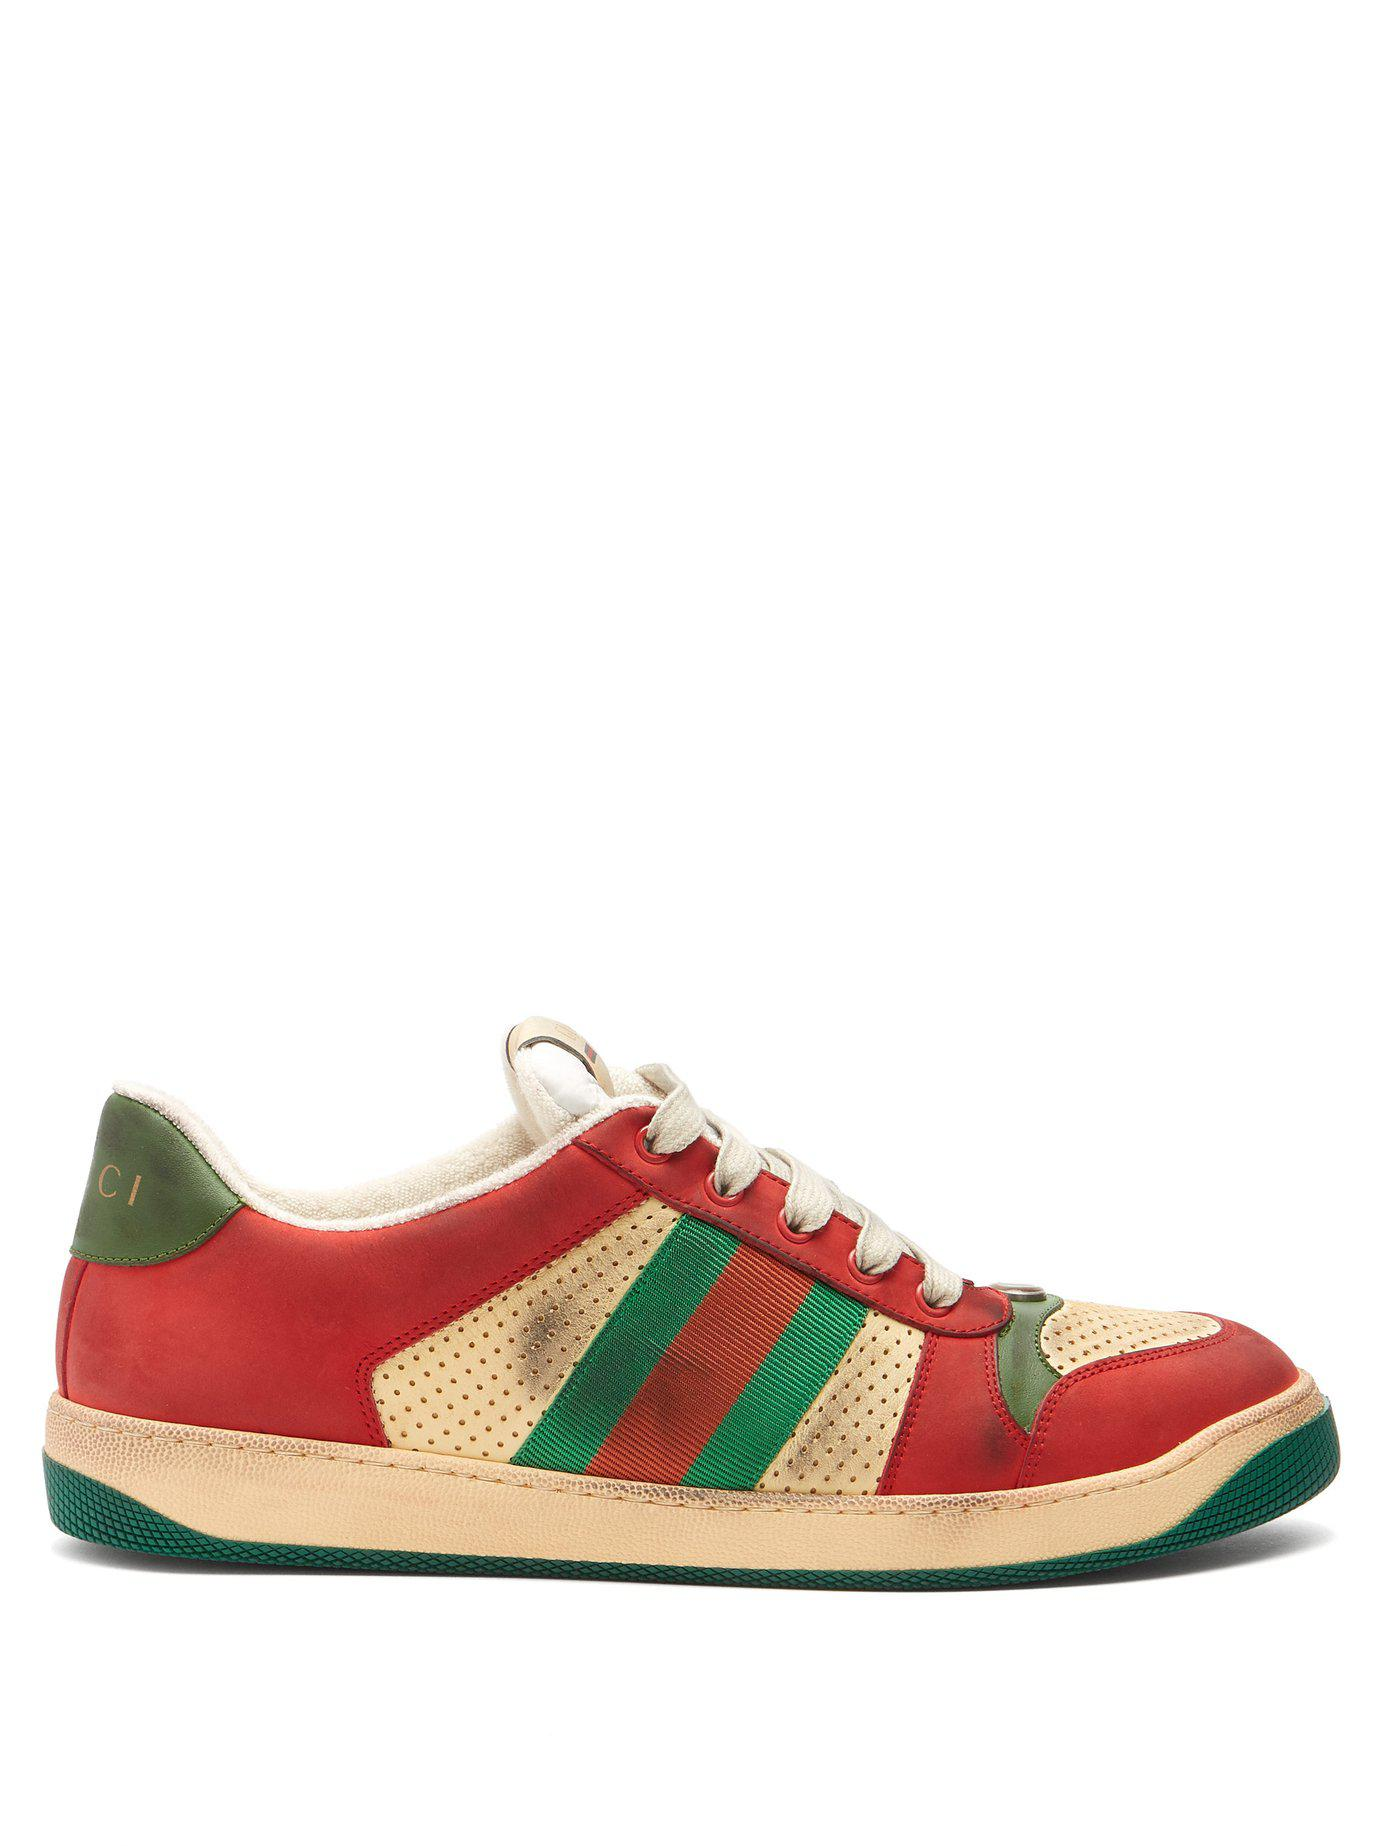 0d43897e7d2 Lyst - Gucci Virtus Low Top Distressed Leather Trainers for Men